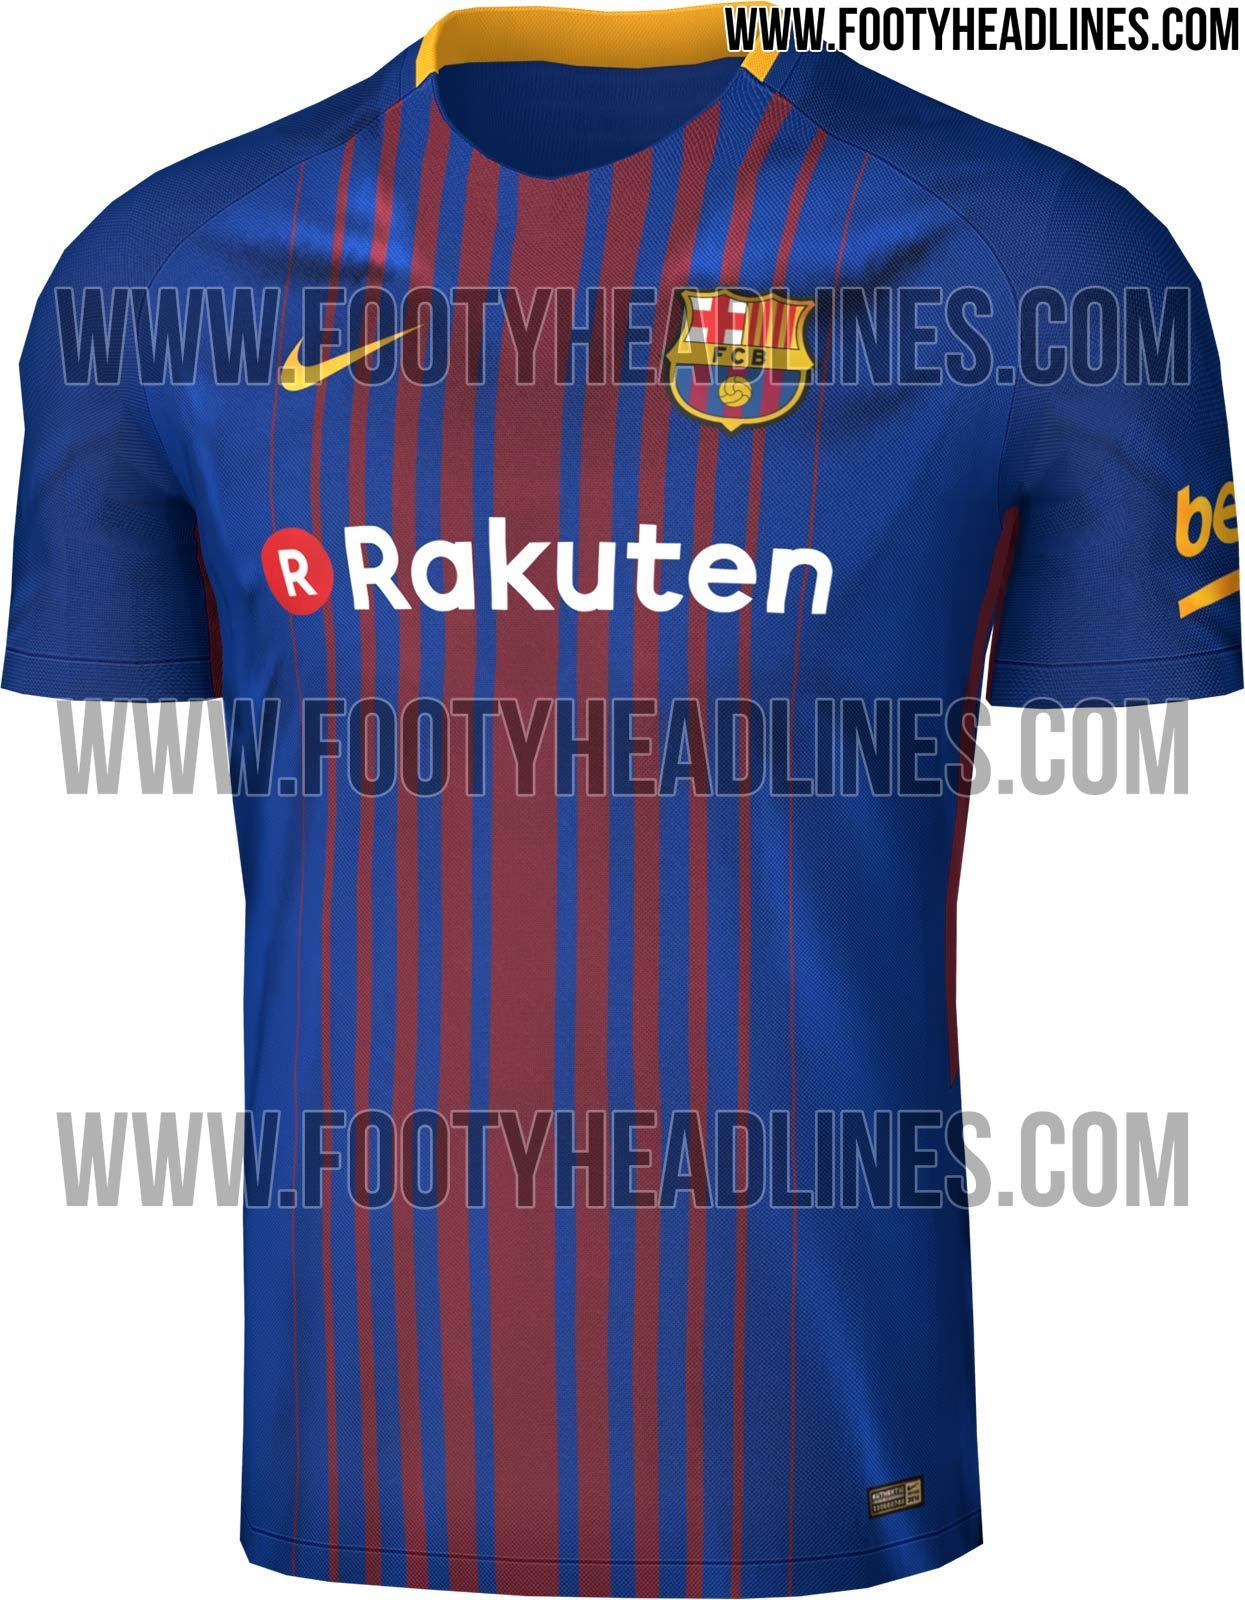 Barcelona-2017-18-home-kit-leaked.jpg